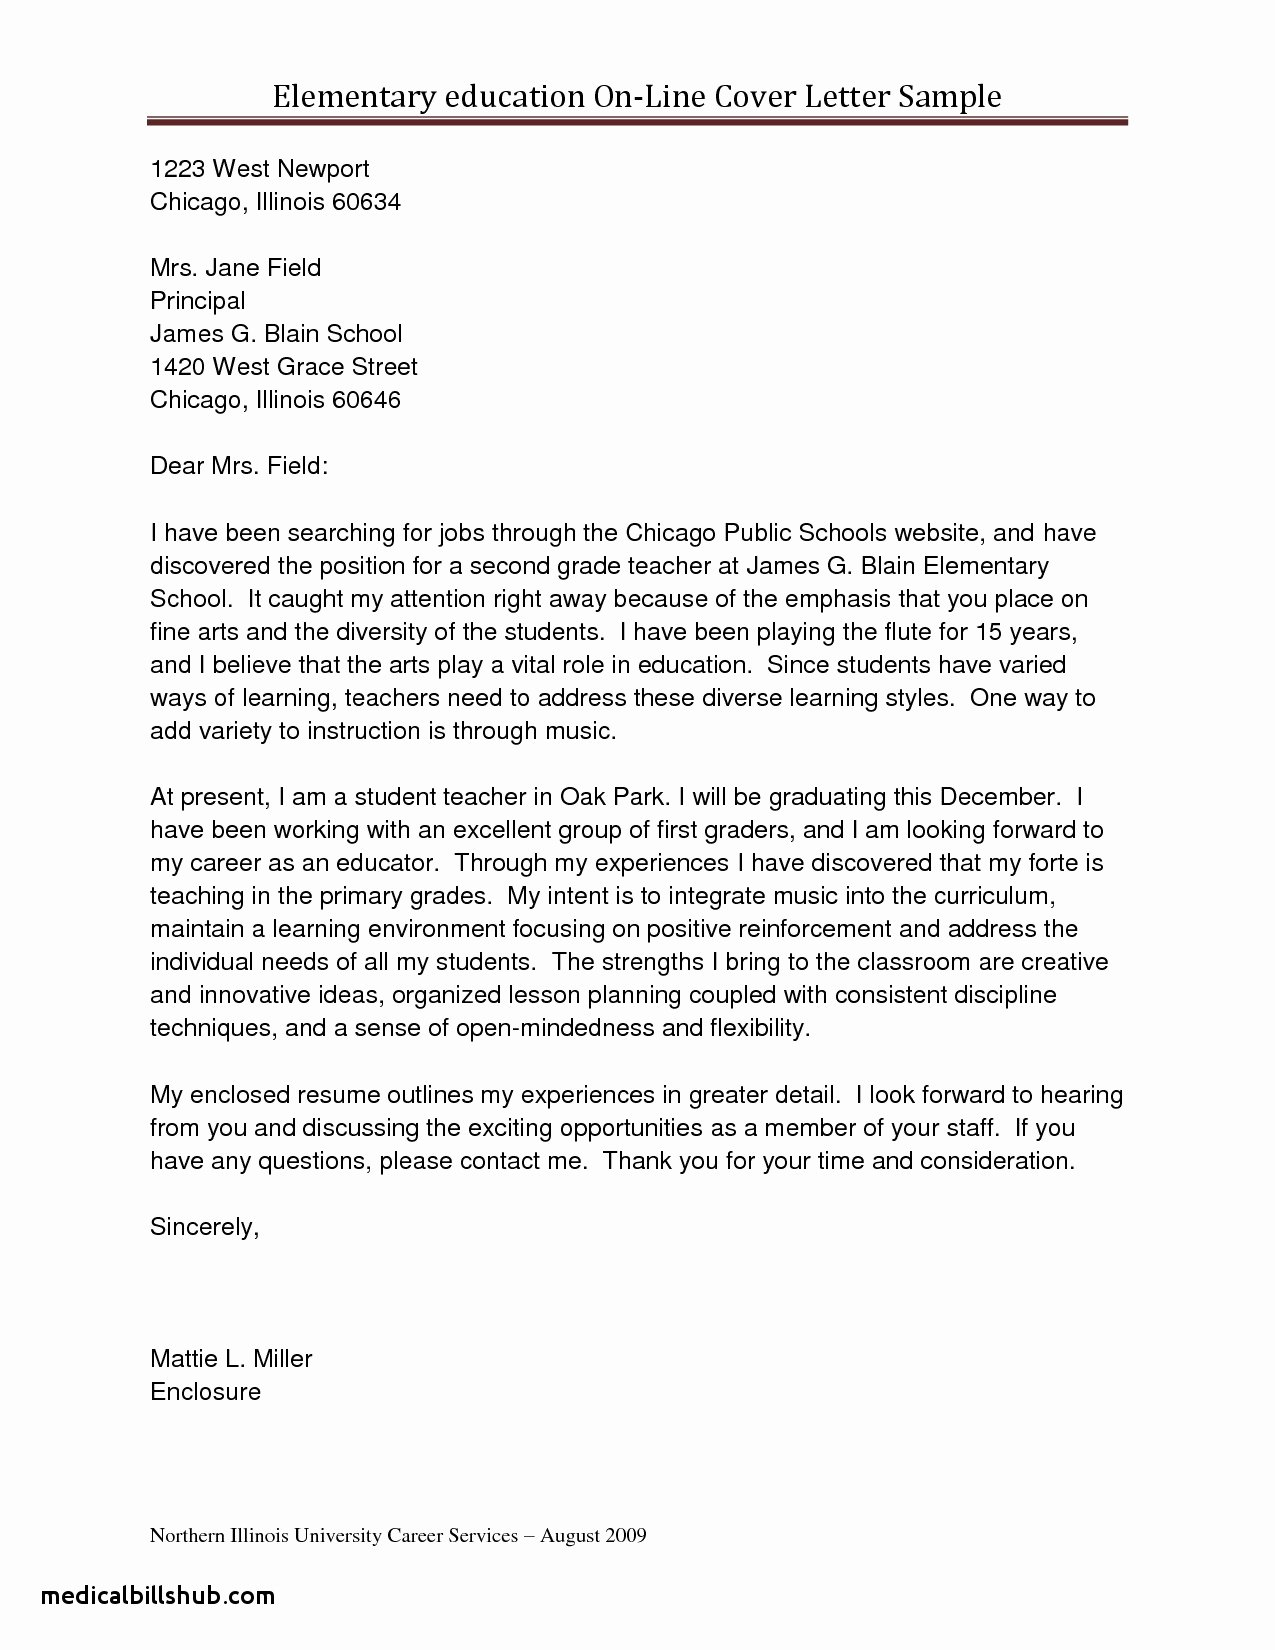 Teacher Cover Letter No Experience associates Degree In